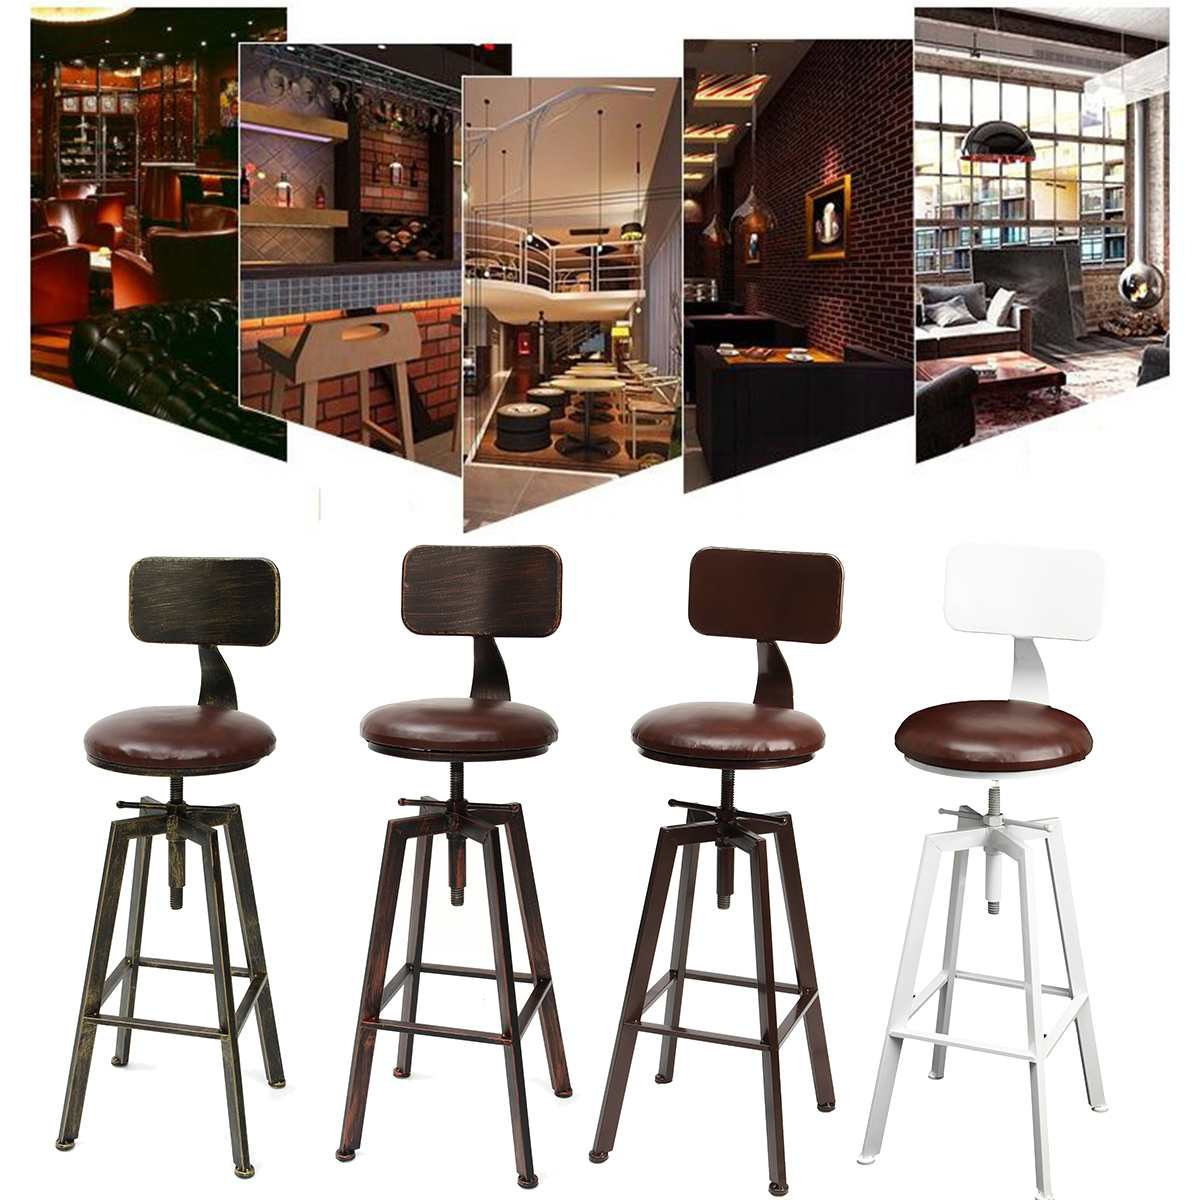 4 Colors Vintage Retro Craft PU Leather Bar Chair Stool 360 Degree Rotate Counter Lift High Chair Stool Home Bar Decoration New